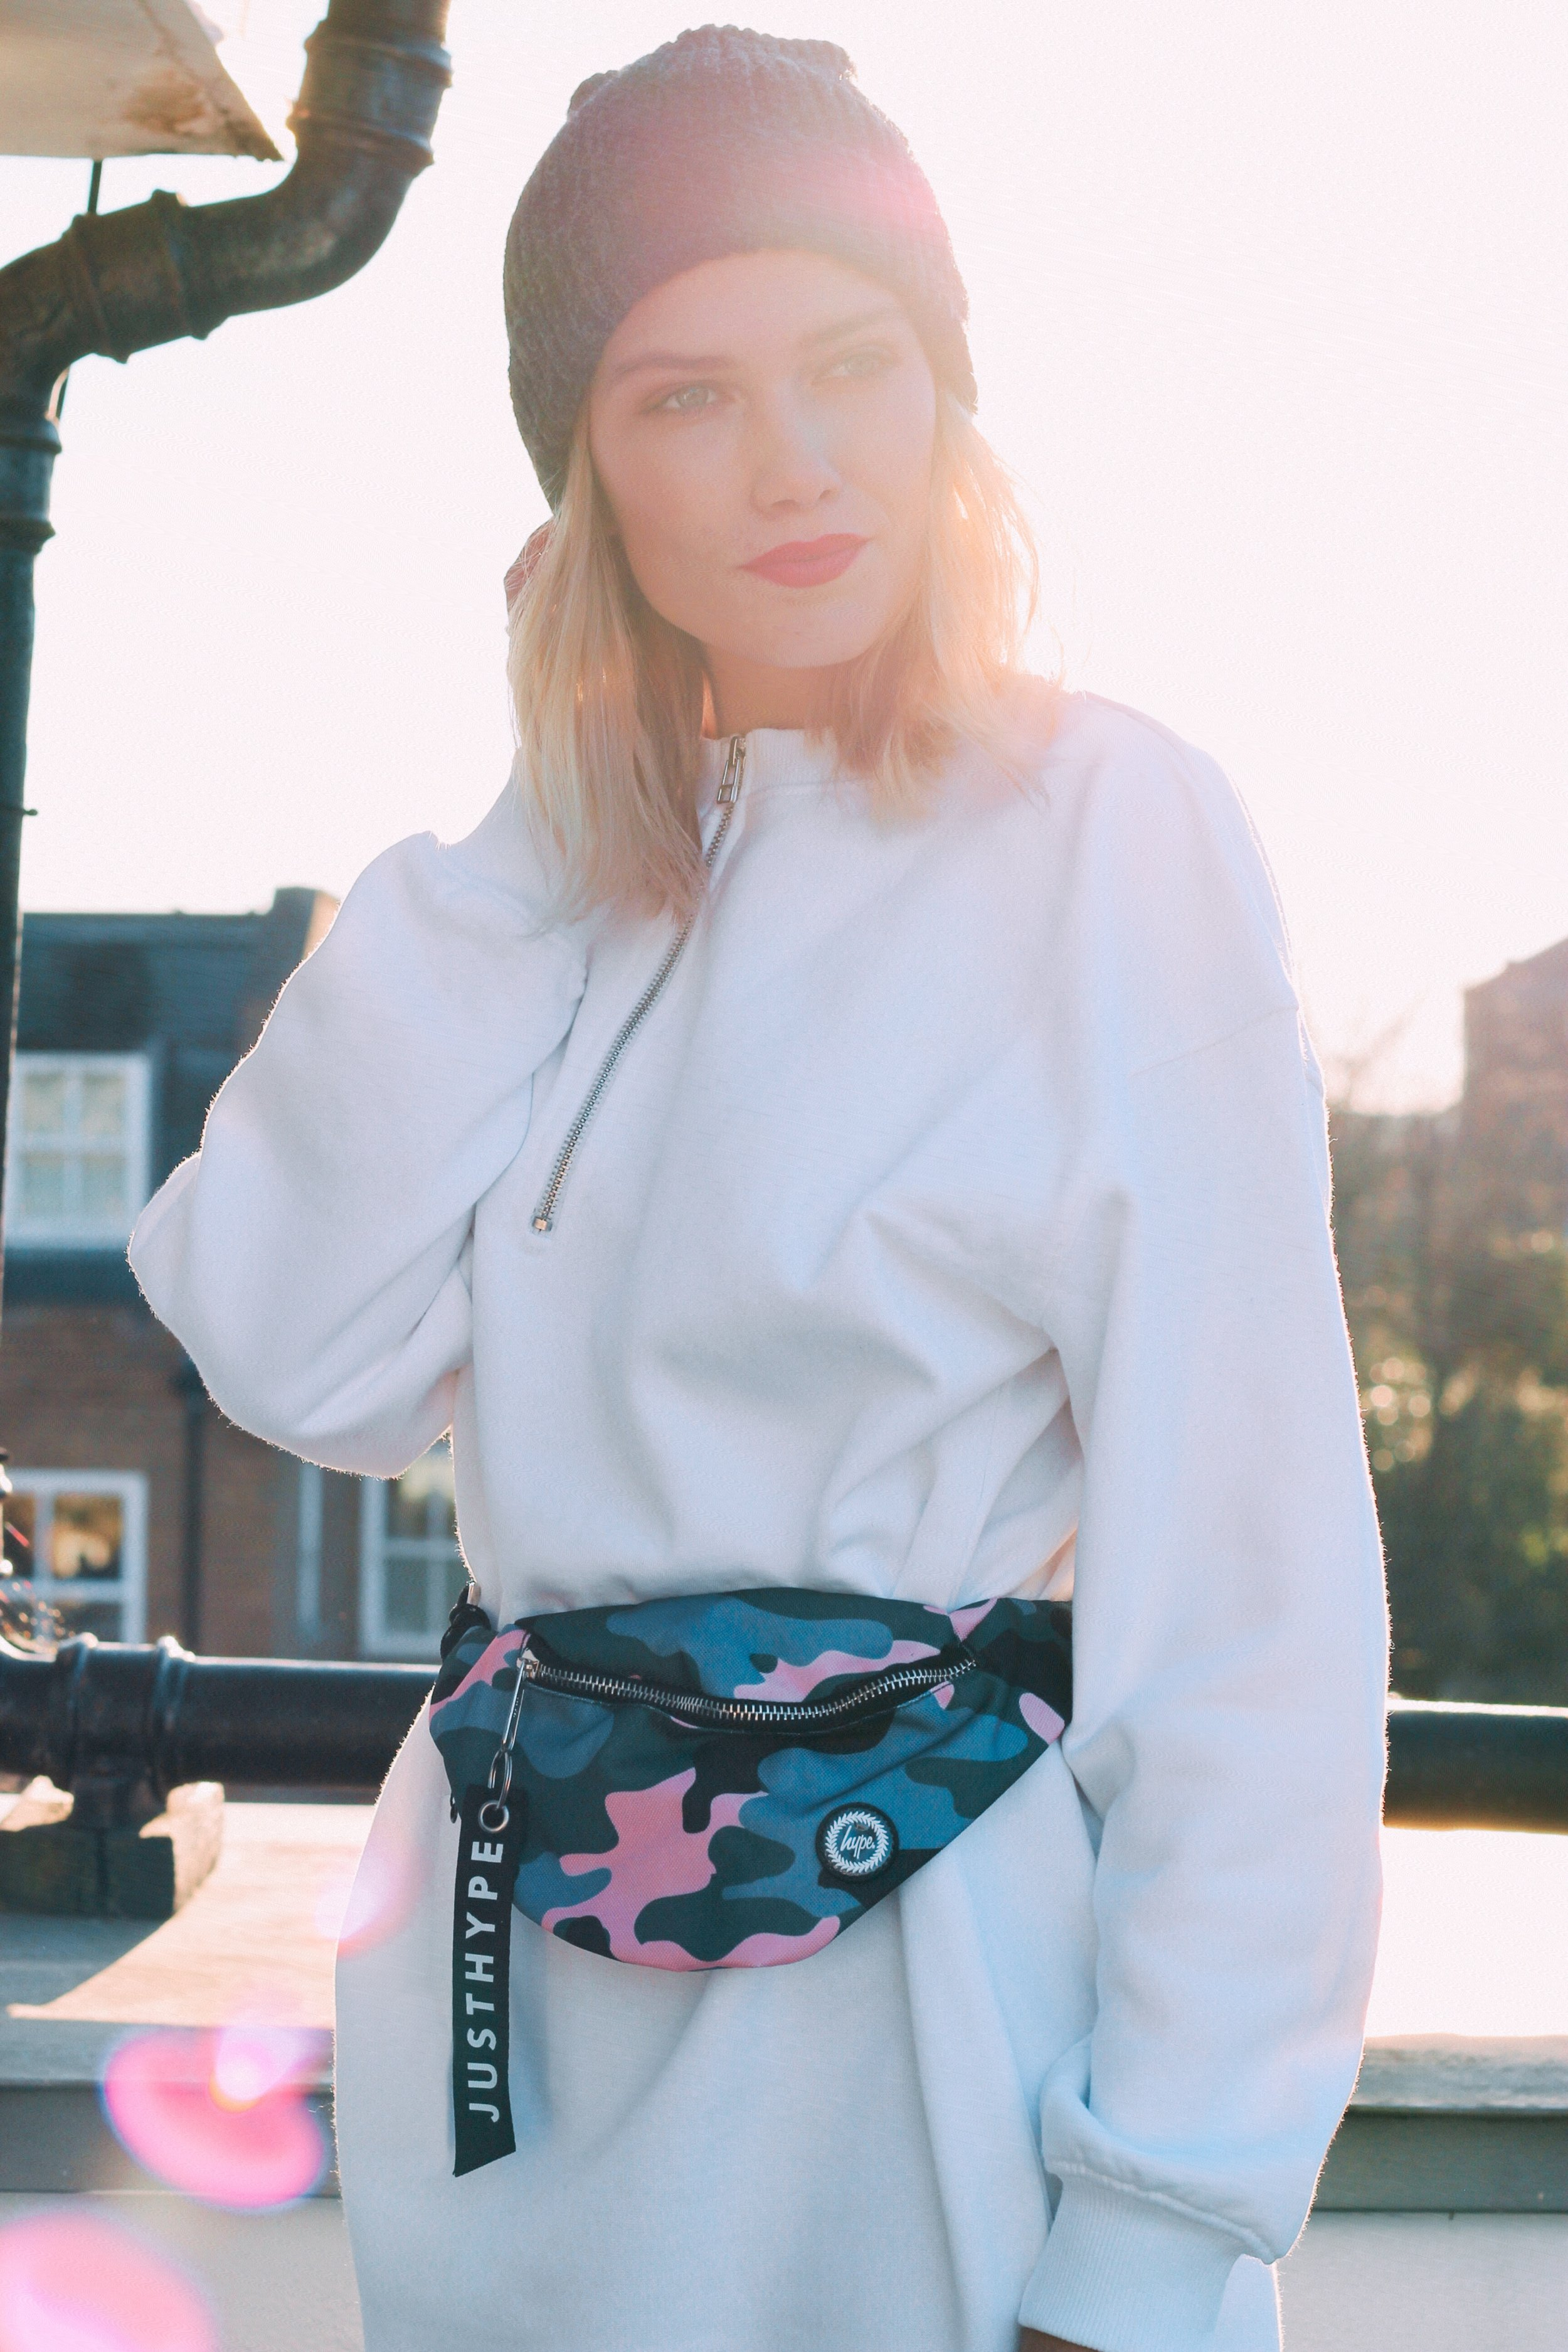 WAIST BAG - Love this little multicoloured Camo Print Bum Bag from Hype!The perfect accessory to spice up a simple white oversized dress.Find it in the shop further down in the post!